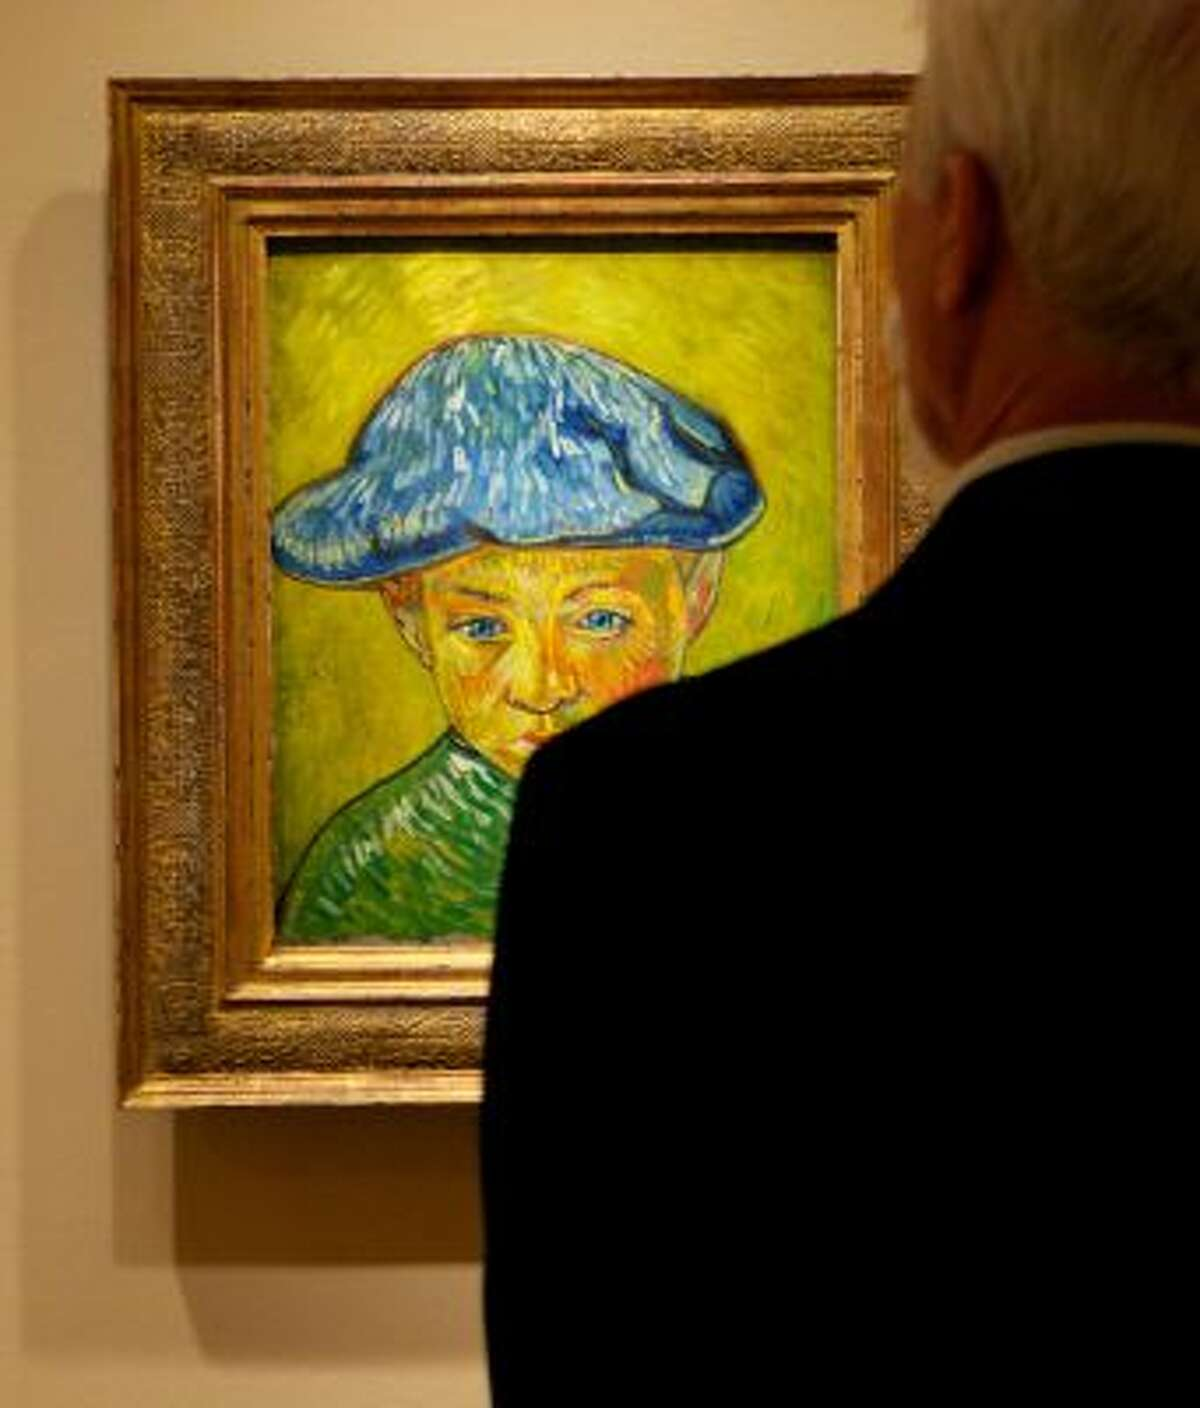 """In this Oct. 8, 2013 photo, a visitor studies Vincent van Gogh's """"Portrait of Camille Roulin,"""" on display at The Phillips Collection in Washington. (AP Photo/Molly Riley)"""